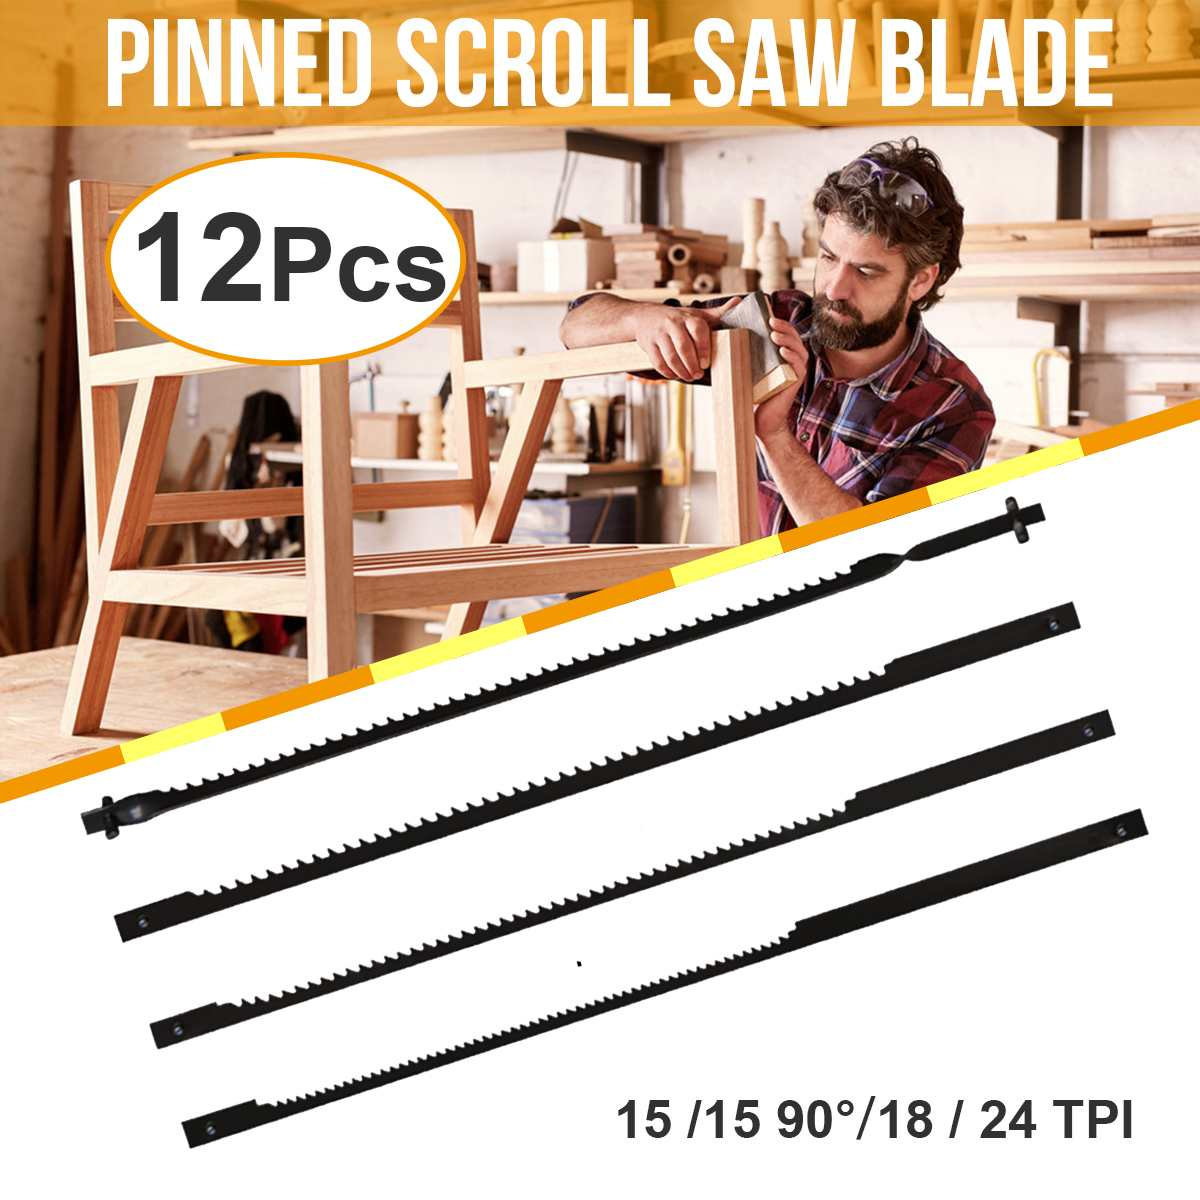 12pcs/set 105mm Pinned Scroll Saw Blades Woodworking Power Tools Accessories